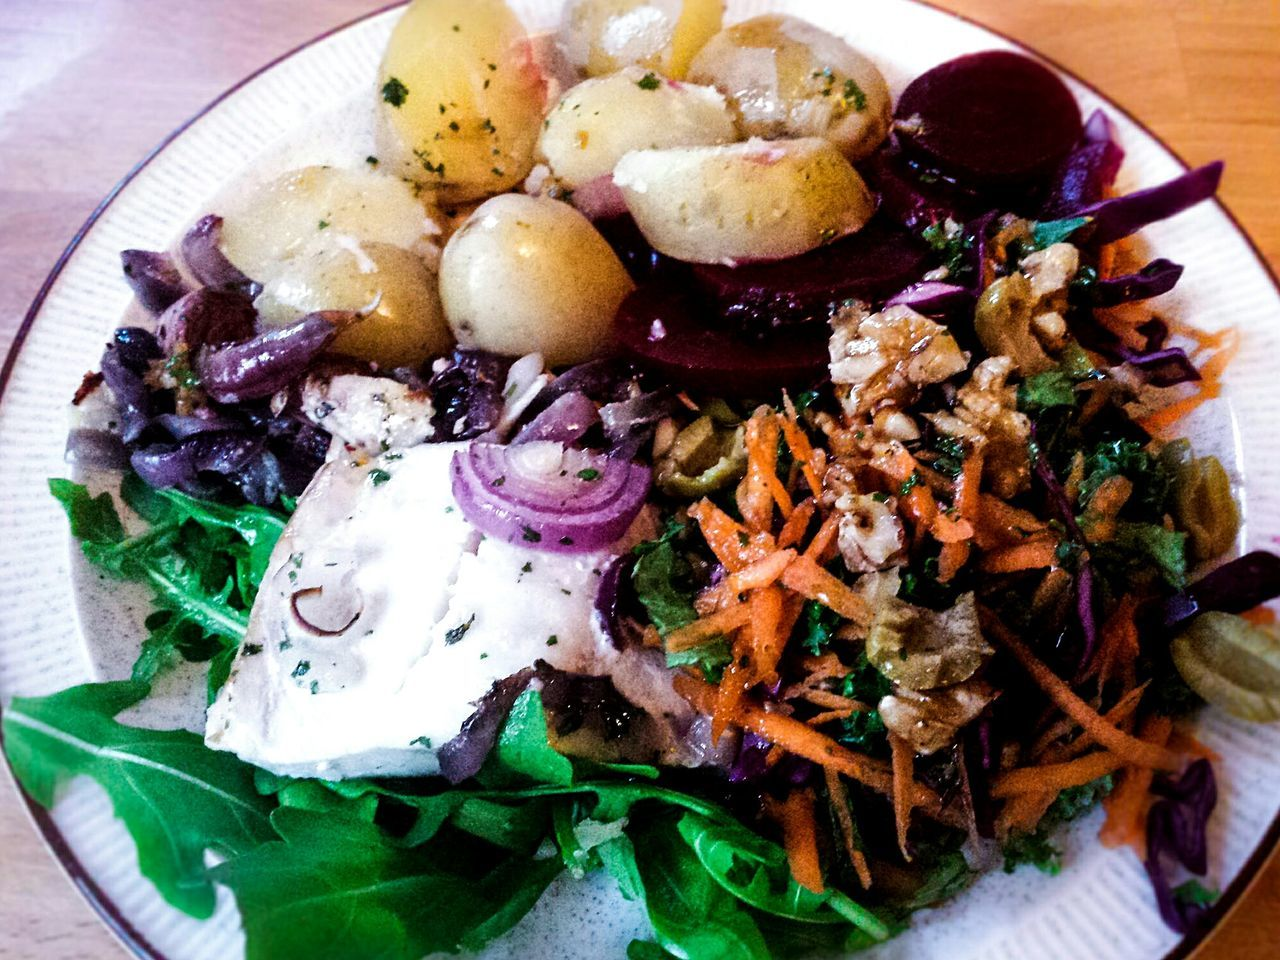 Food Foodporn Food Porn Foodphotography Food Photography Lunch Plate Coleslaw Homemade Food Homemade Fish Salad Yum Colour Of Life Table Potatoes Scrumptious